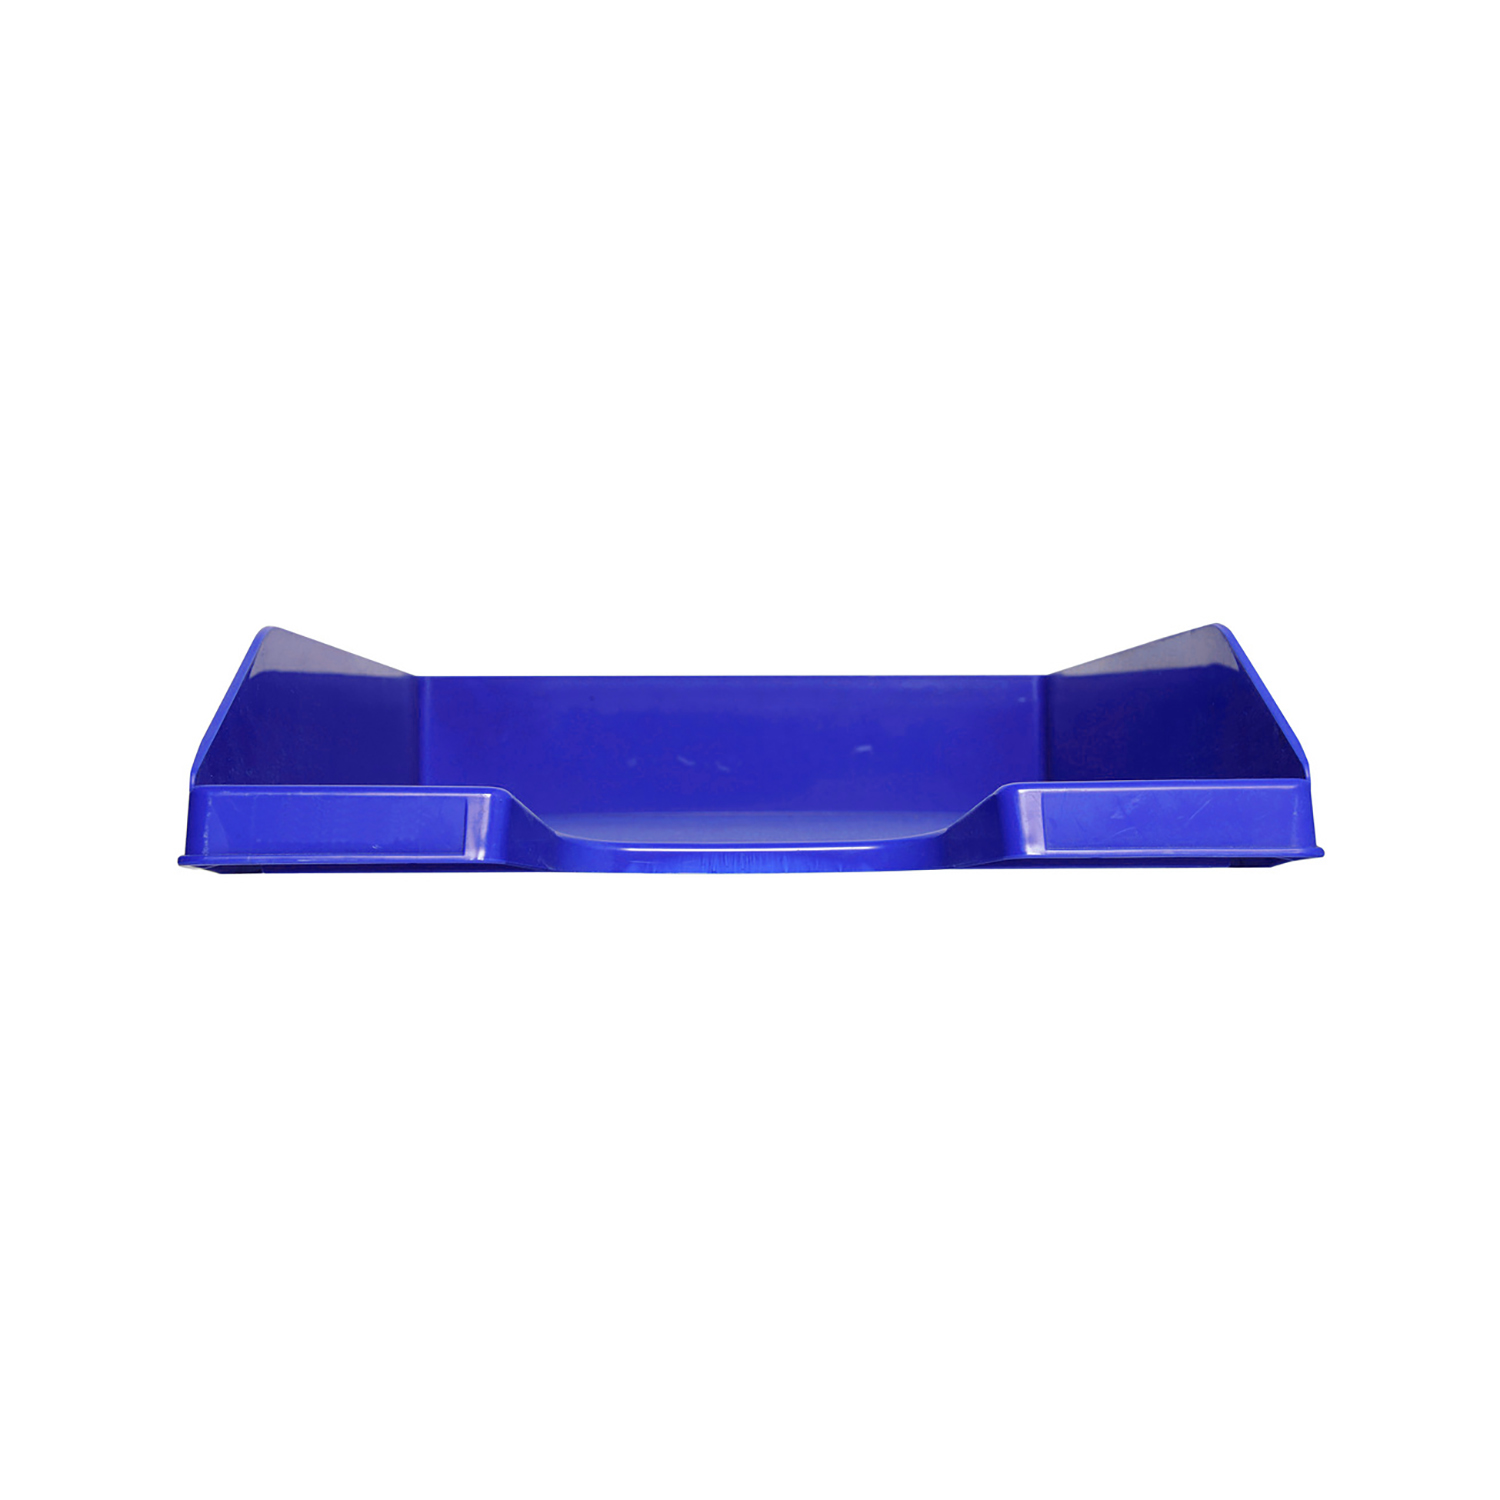 Image for Exacompta Forever Letter Tray Recycled Plastic W255xD346xH65mm Blue Ref 113101D